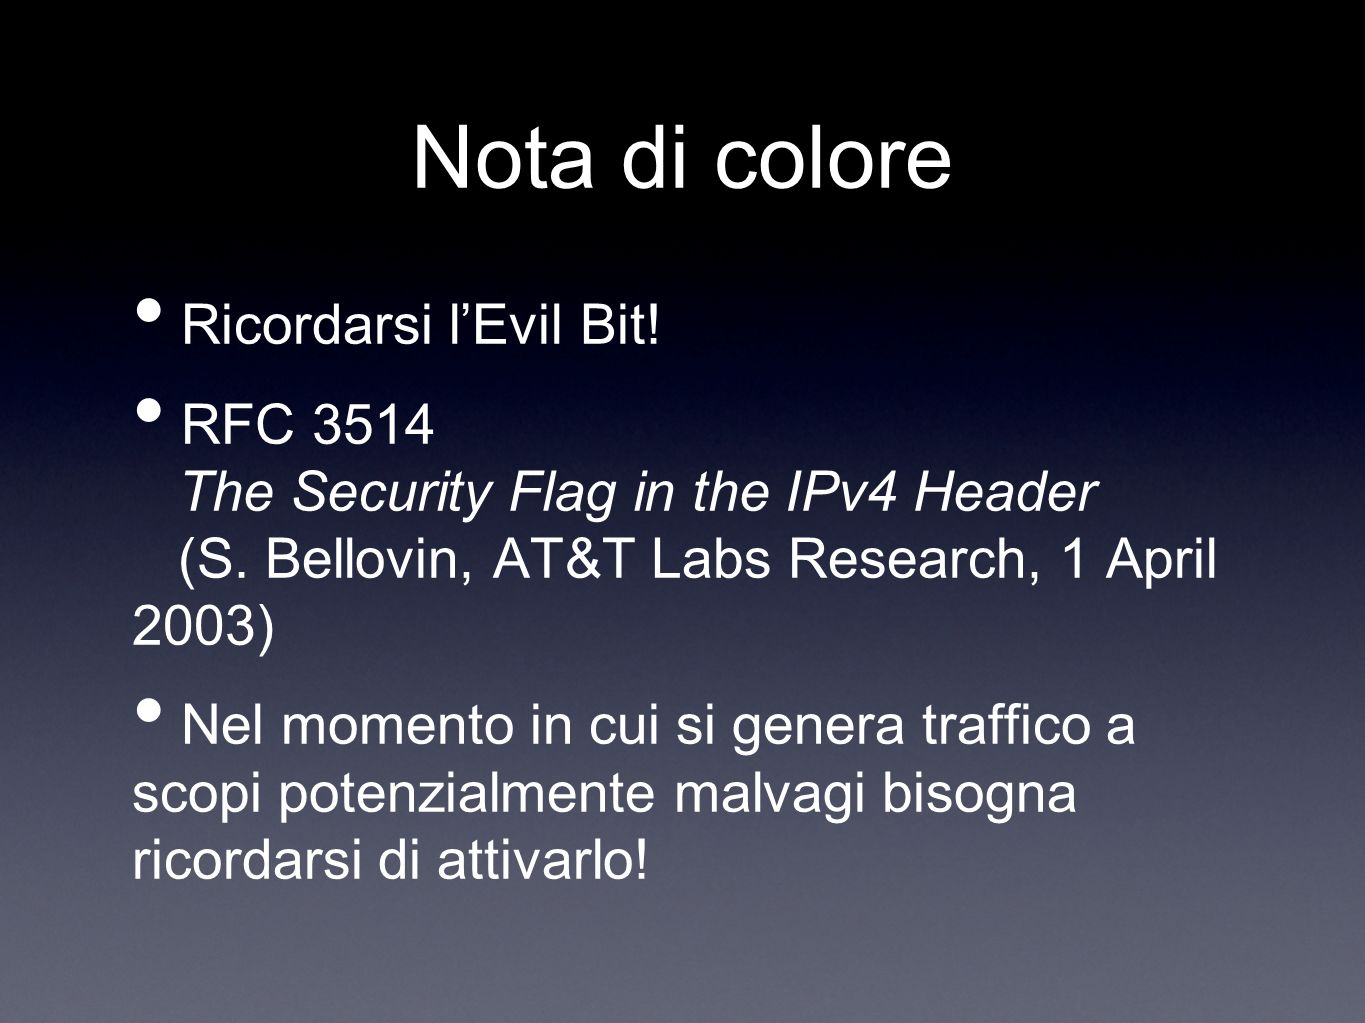 Nota di colore Ricordarsi lEvil Bit! RFC 3514 The Security Flag in the IPv4 Header (S. Bellovin, AT&T Labs Research, 1 April 2003) Nel momento in cui